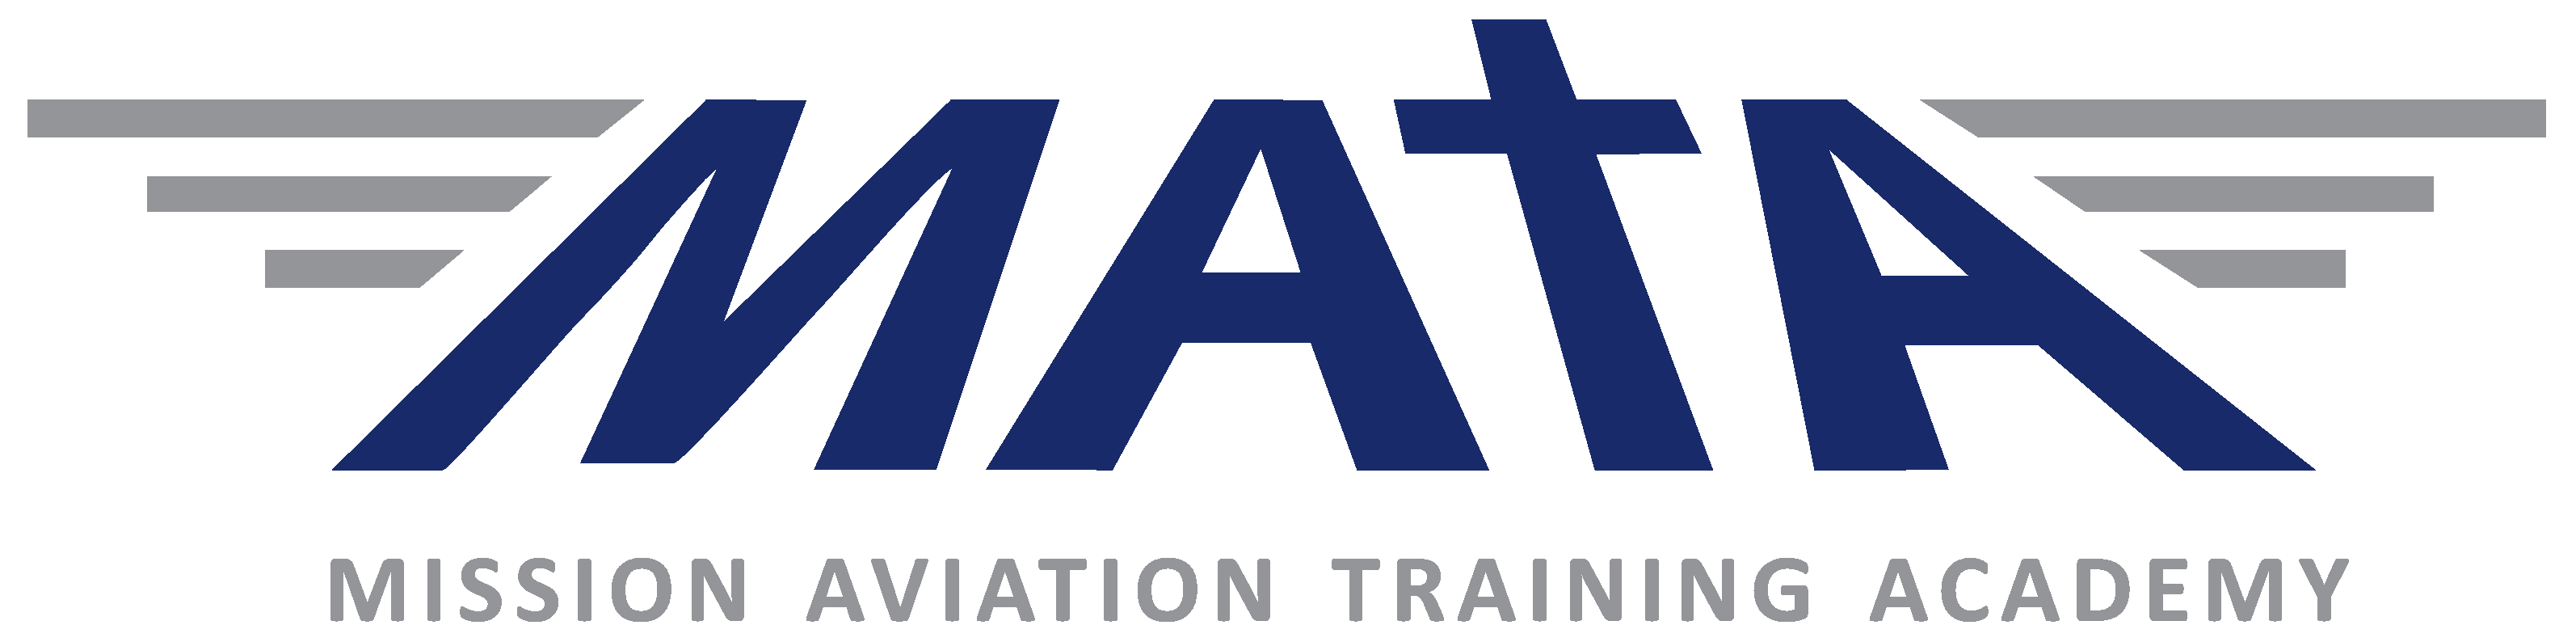 MATA Mission Aviation Training Academy